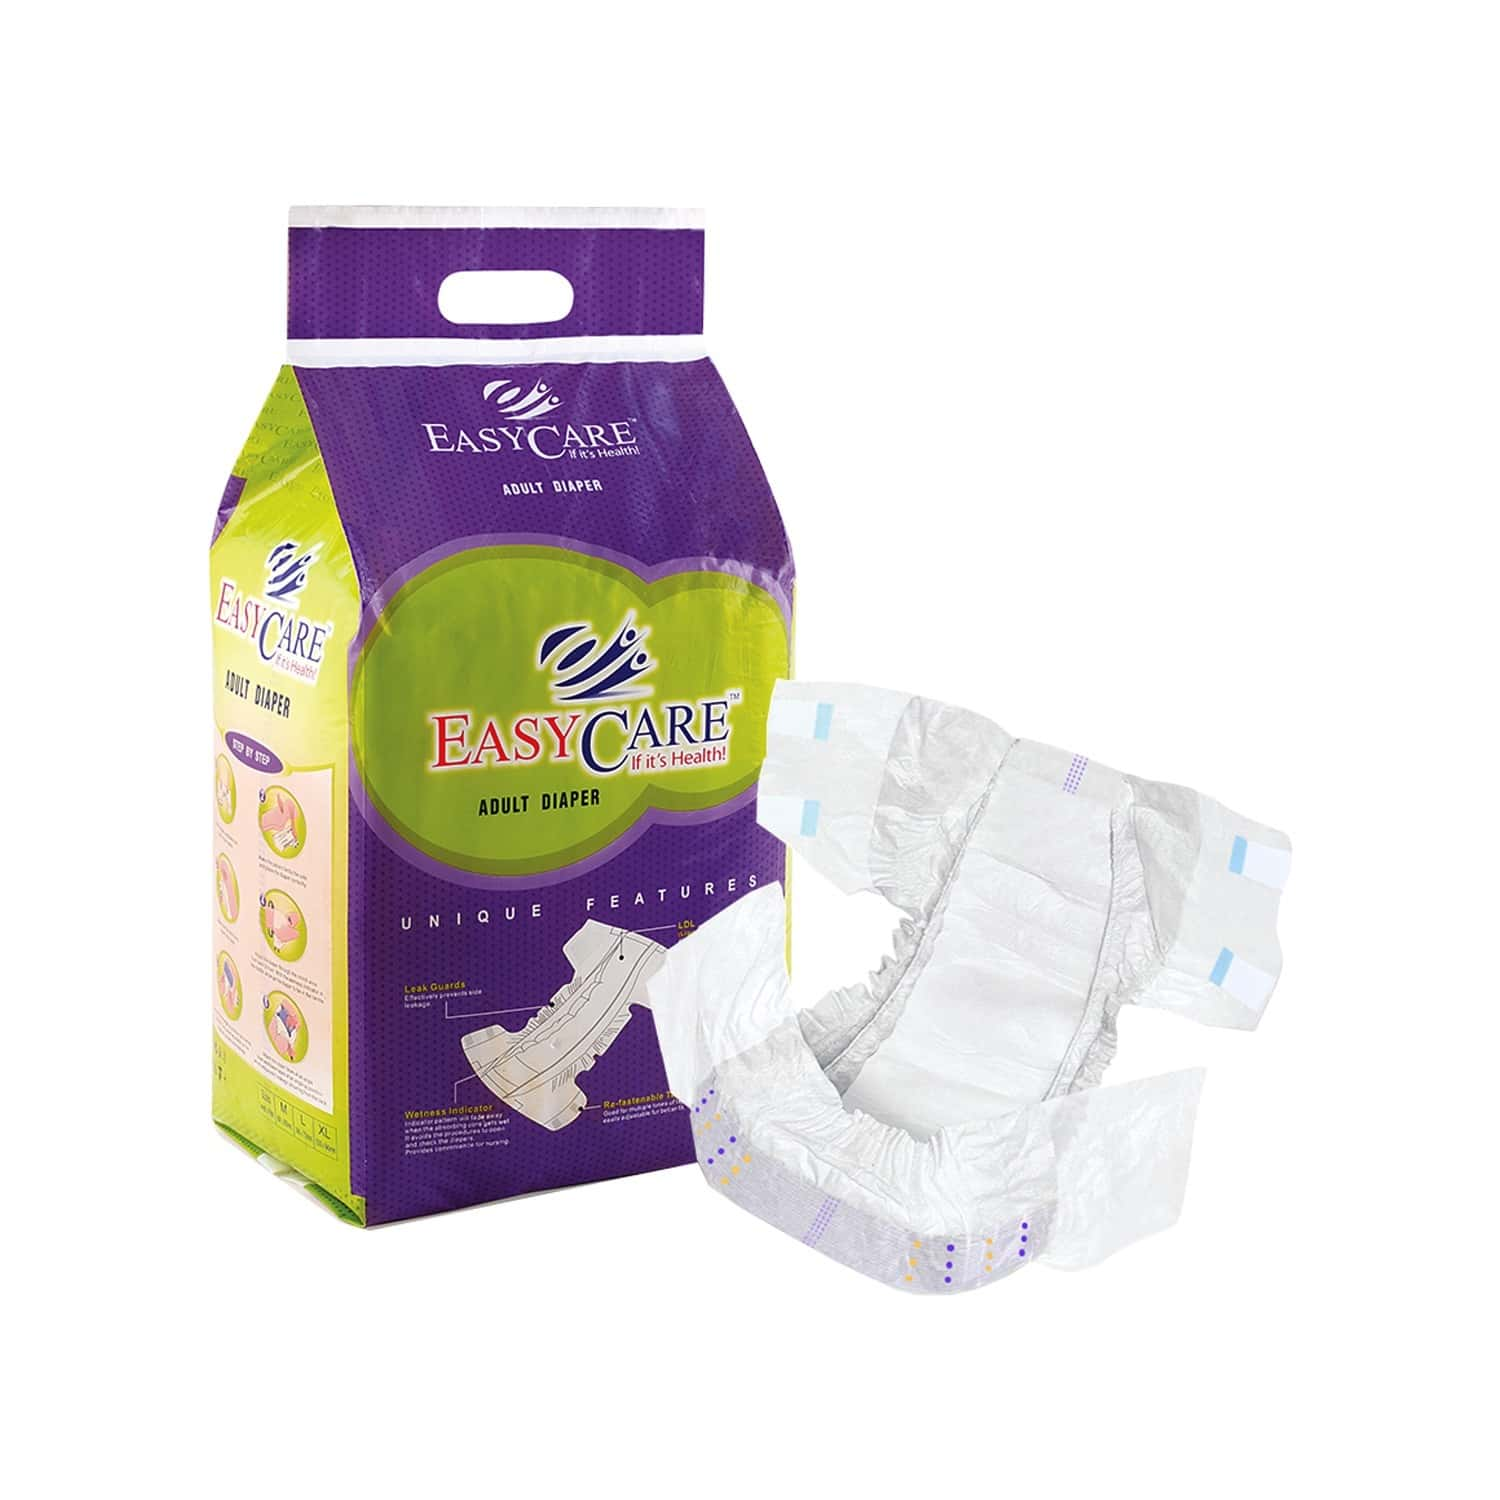 Easycare Adult Diaper - Pack Of 10 Soft & Comfort With Double Leakage Parrier (127 X 165 Cm) Size- Xl